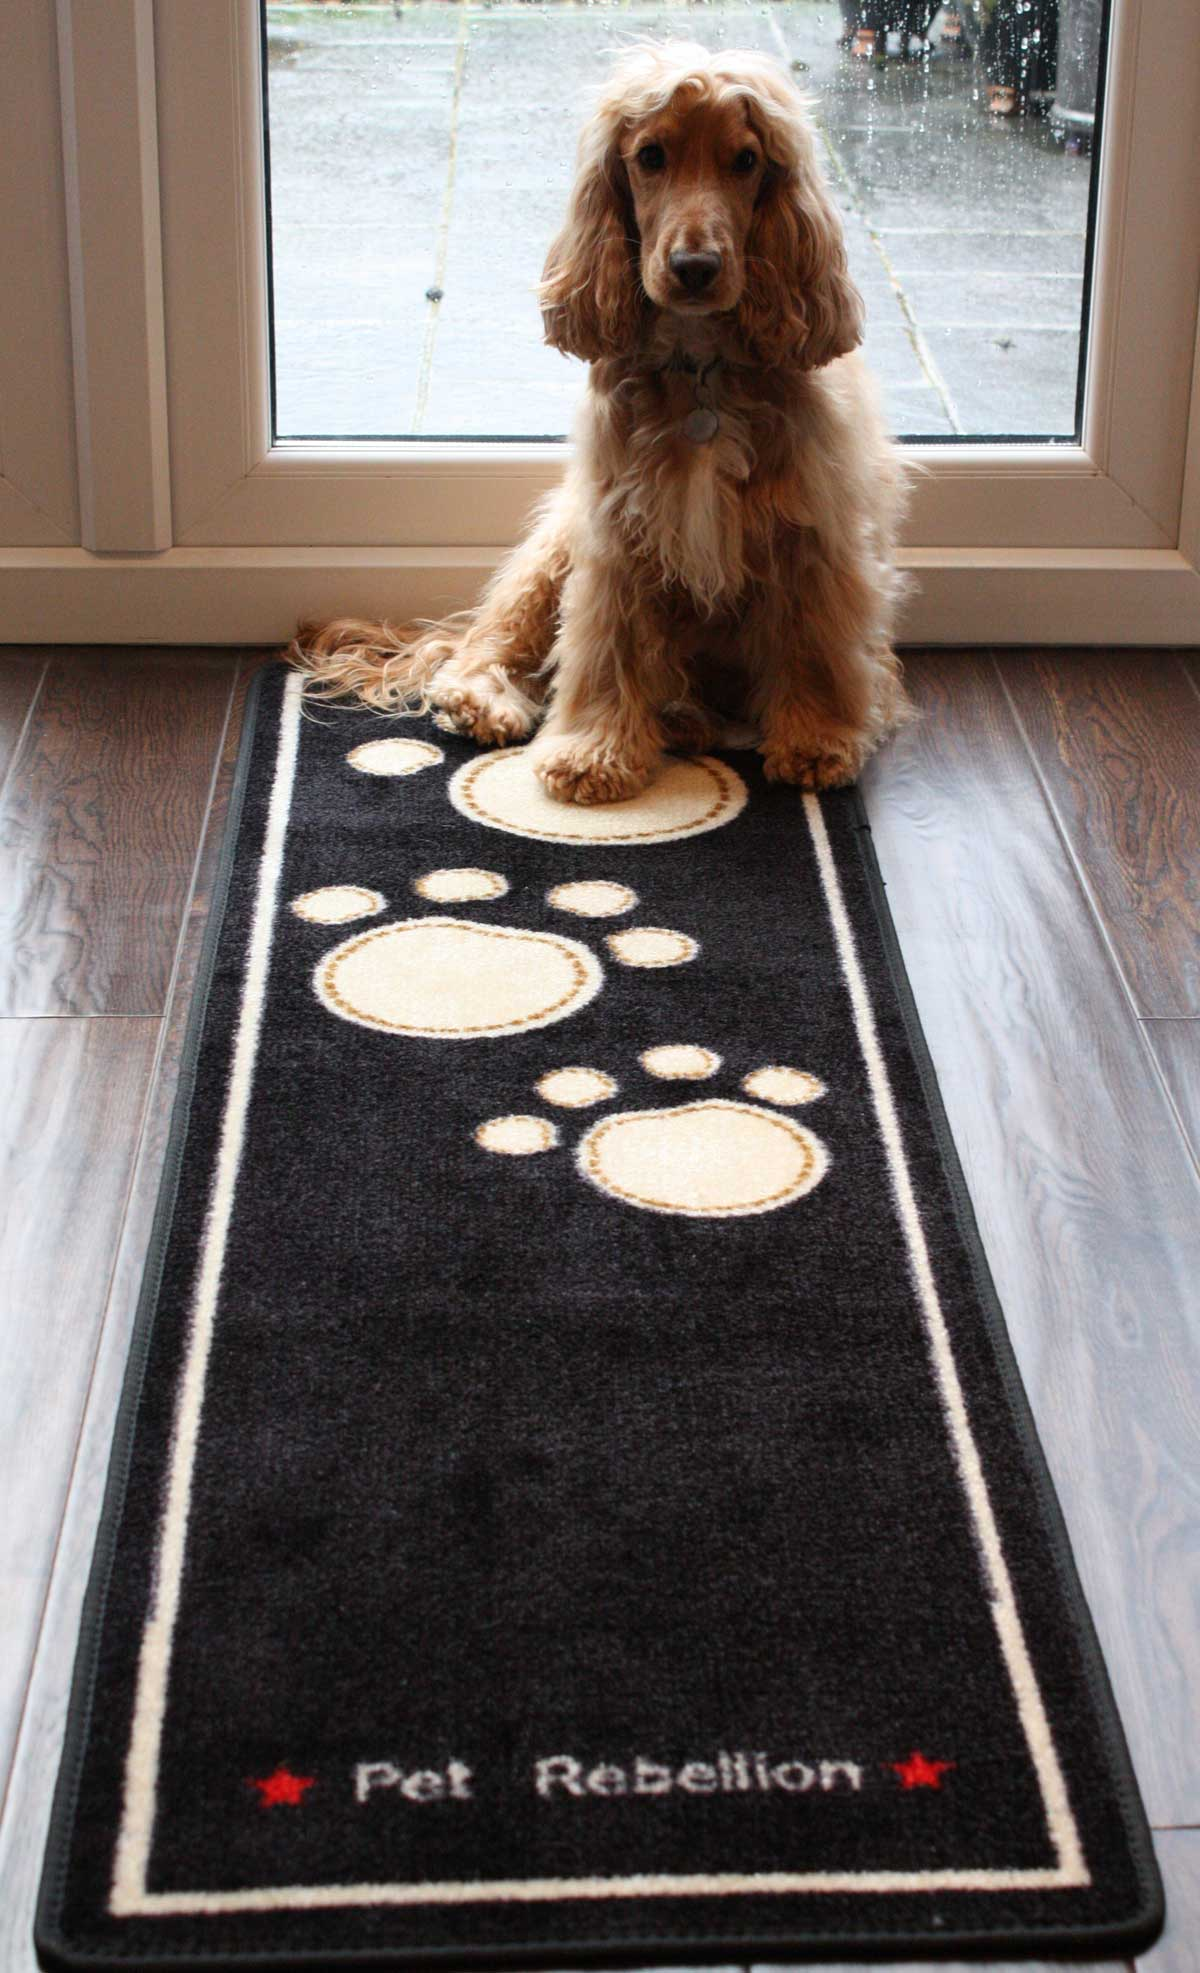 Pet Rebellion Dog Runner Non-Slip Dog Mat